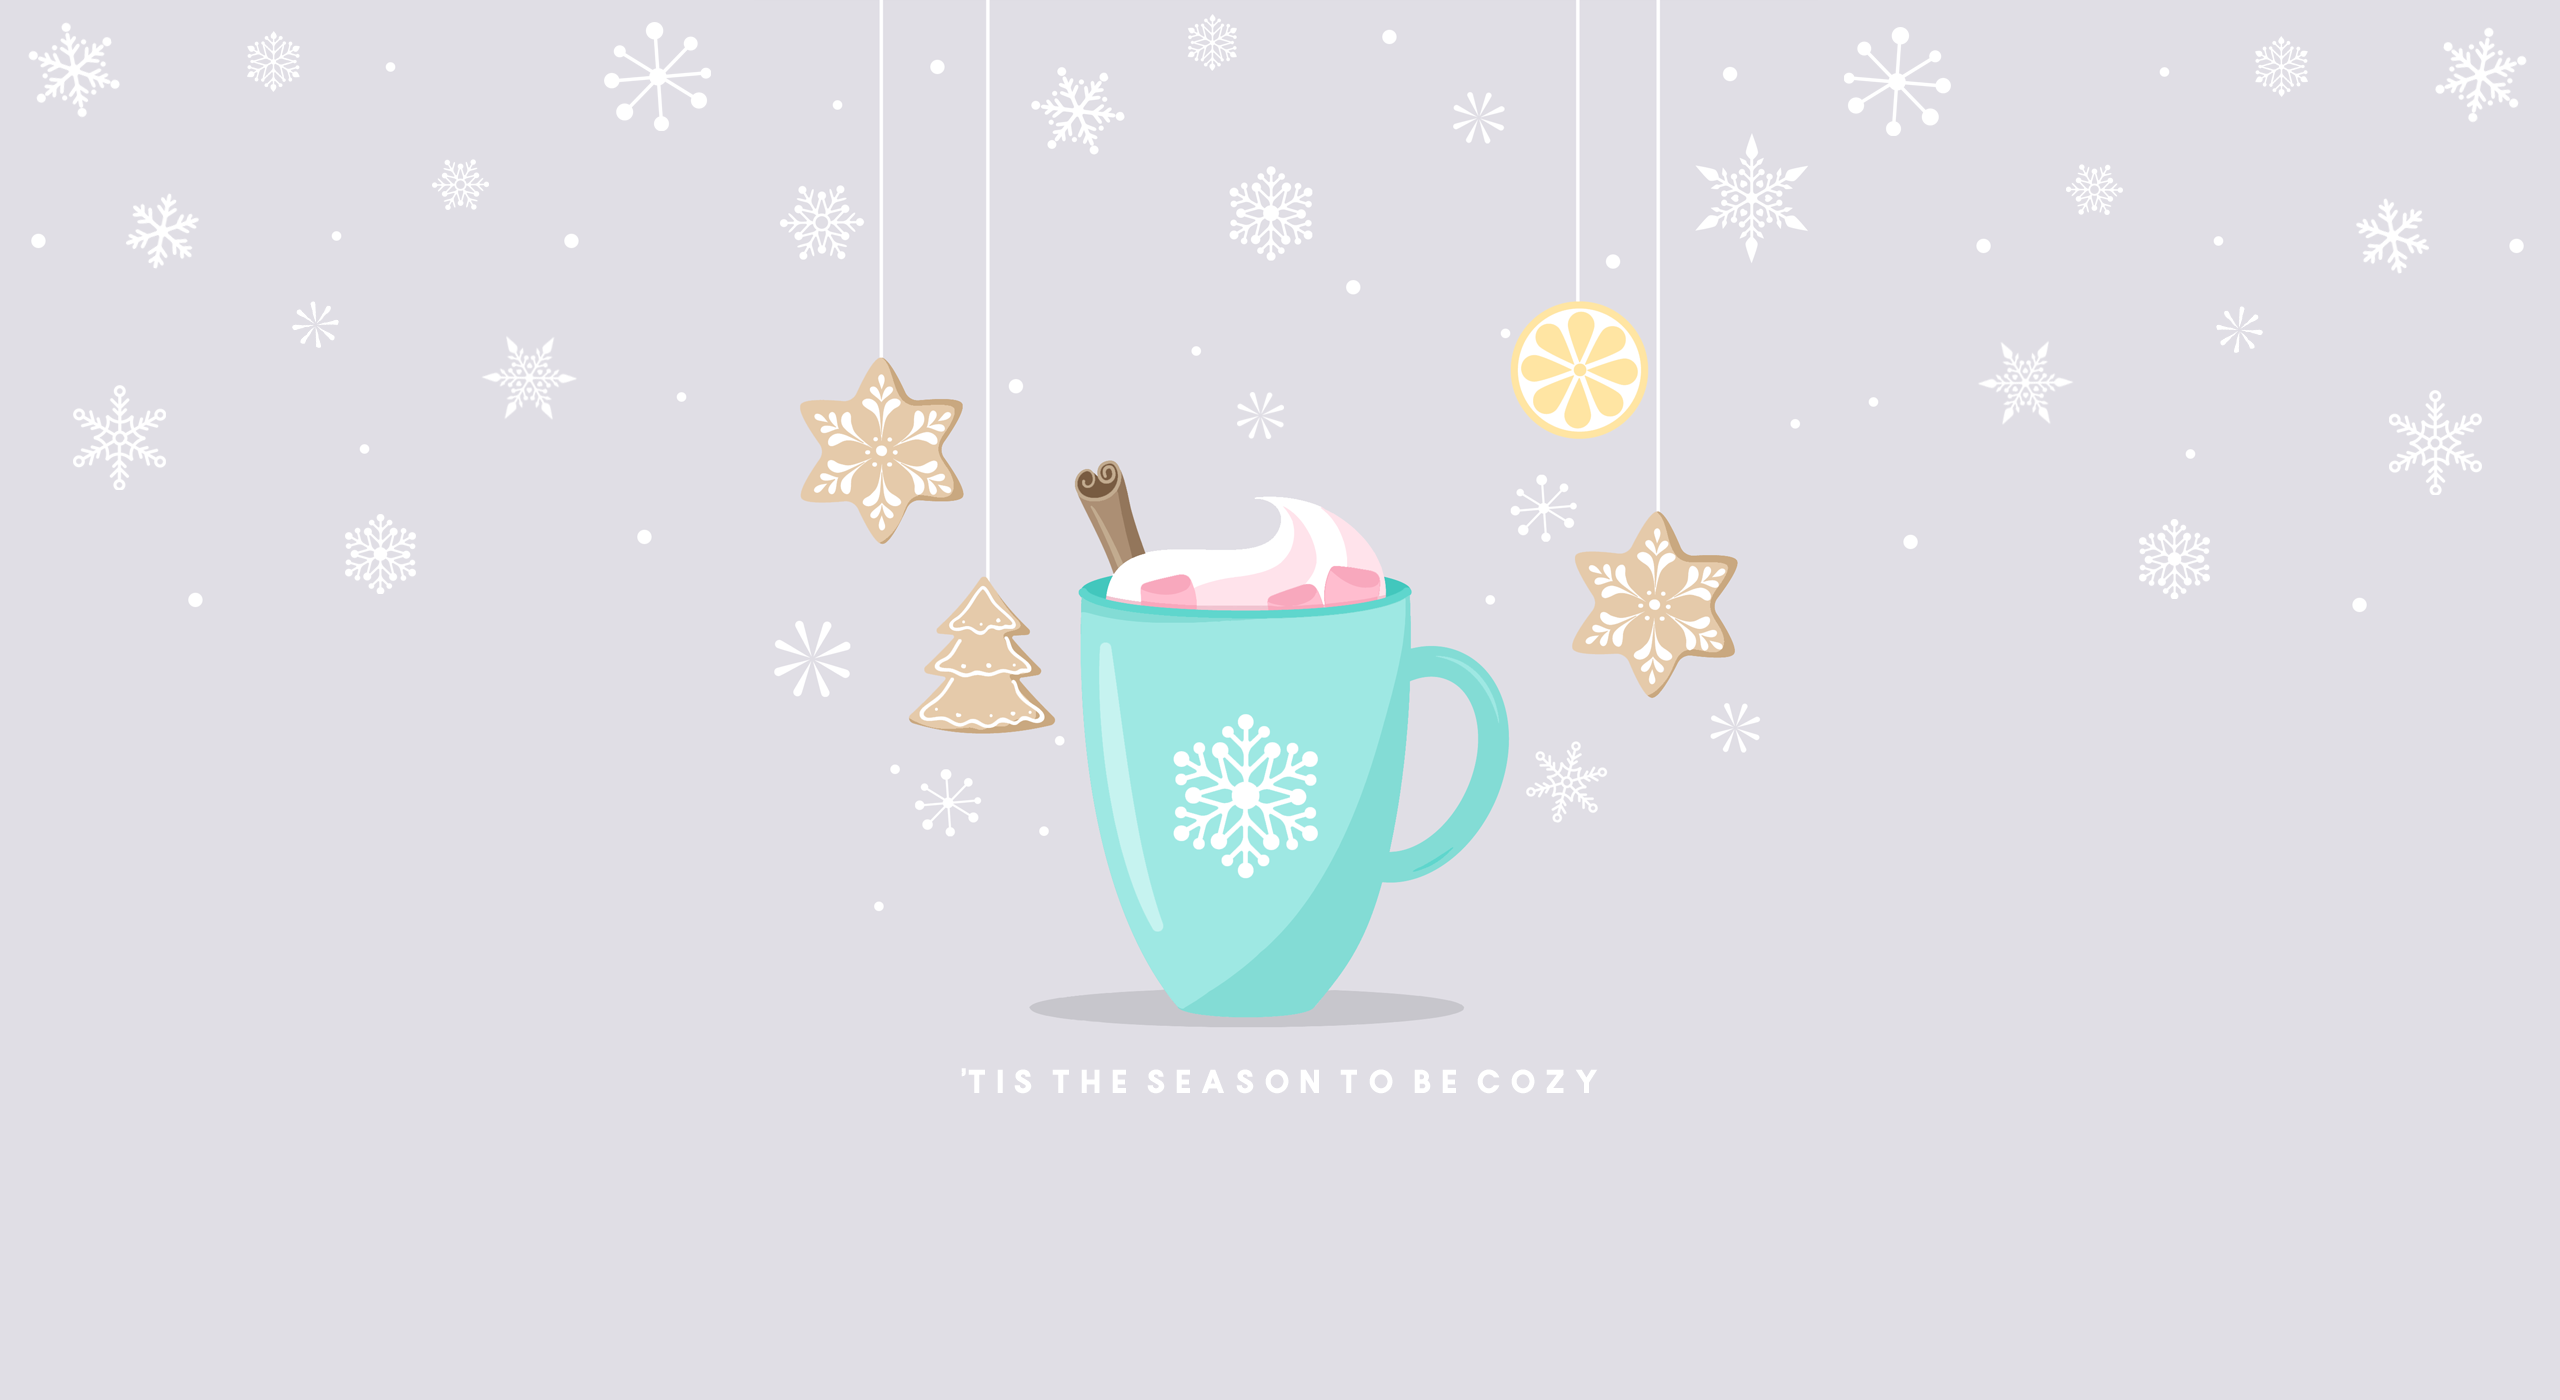 The Writing S On The Wall Tis The Season To Be Cozy Christmas Desktop Wallpaper Winter Wallpaper Desktop Cute Christmas Wallpaper